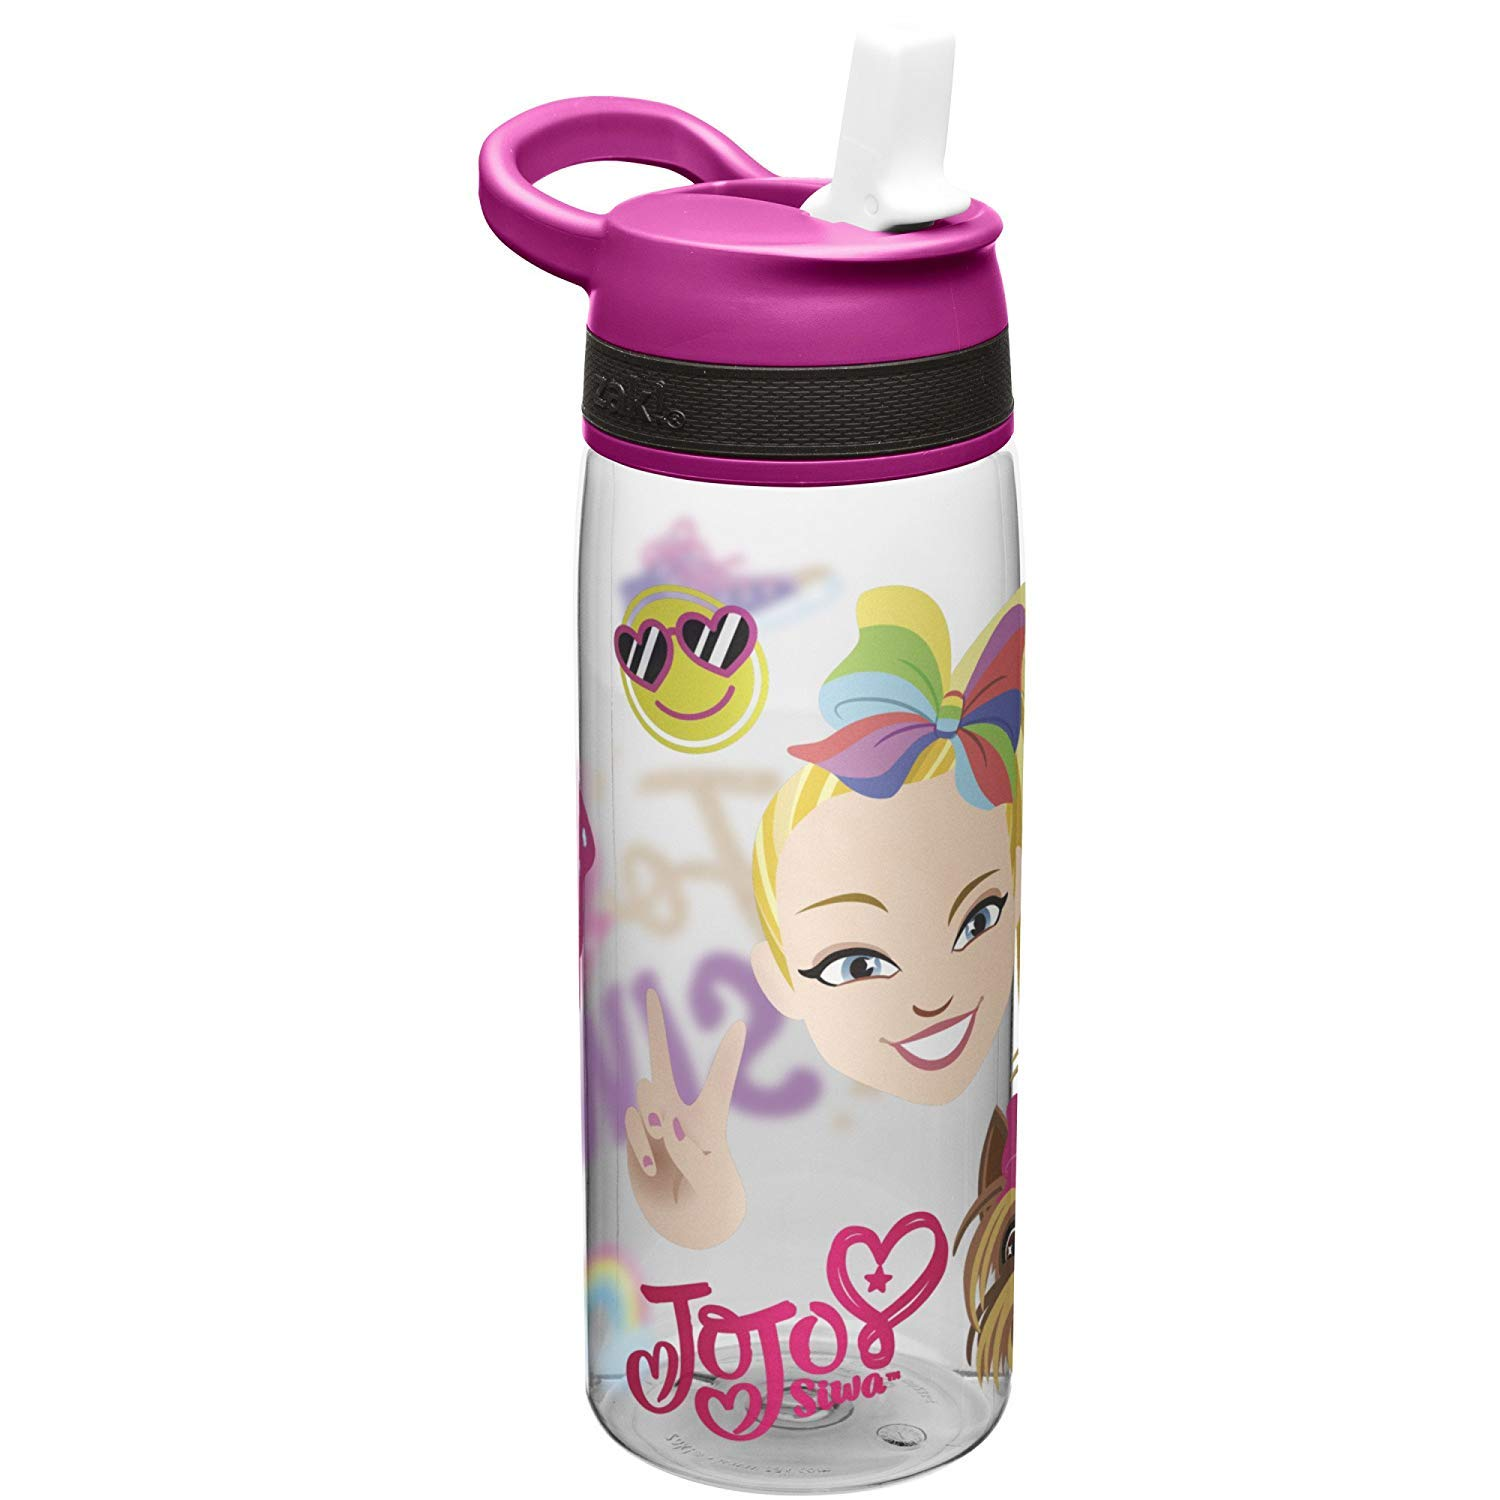 753c557933 Zak Designs Jojo Siwa Kids Water Bottle with Straw and Built in Carrying  Loop, Durable